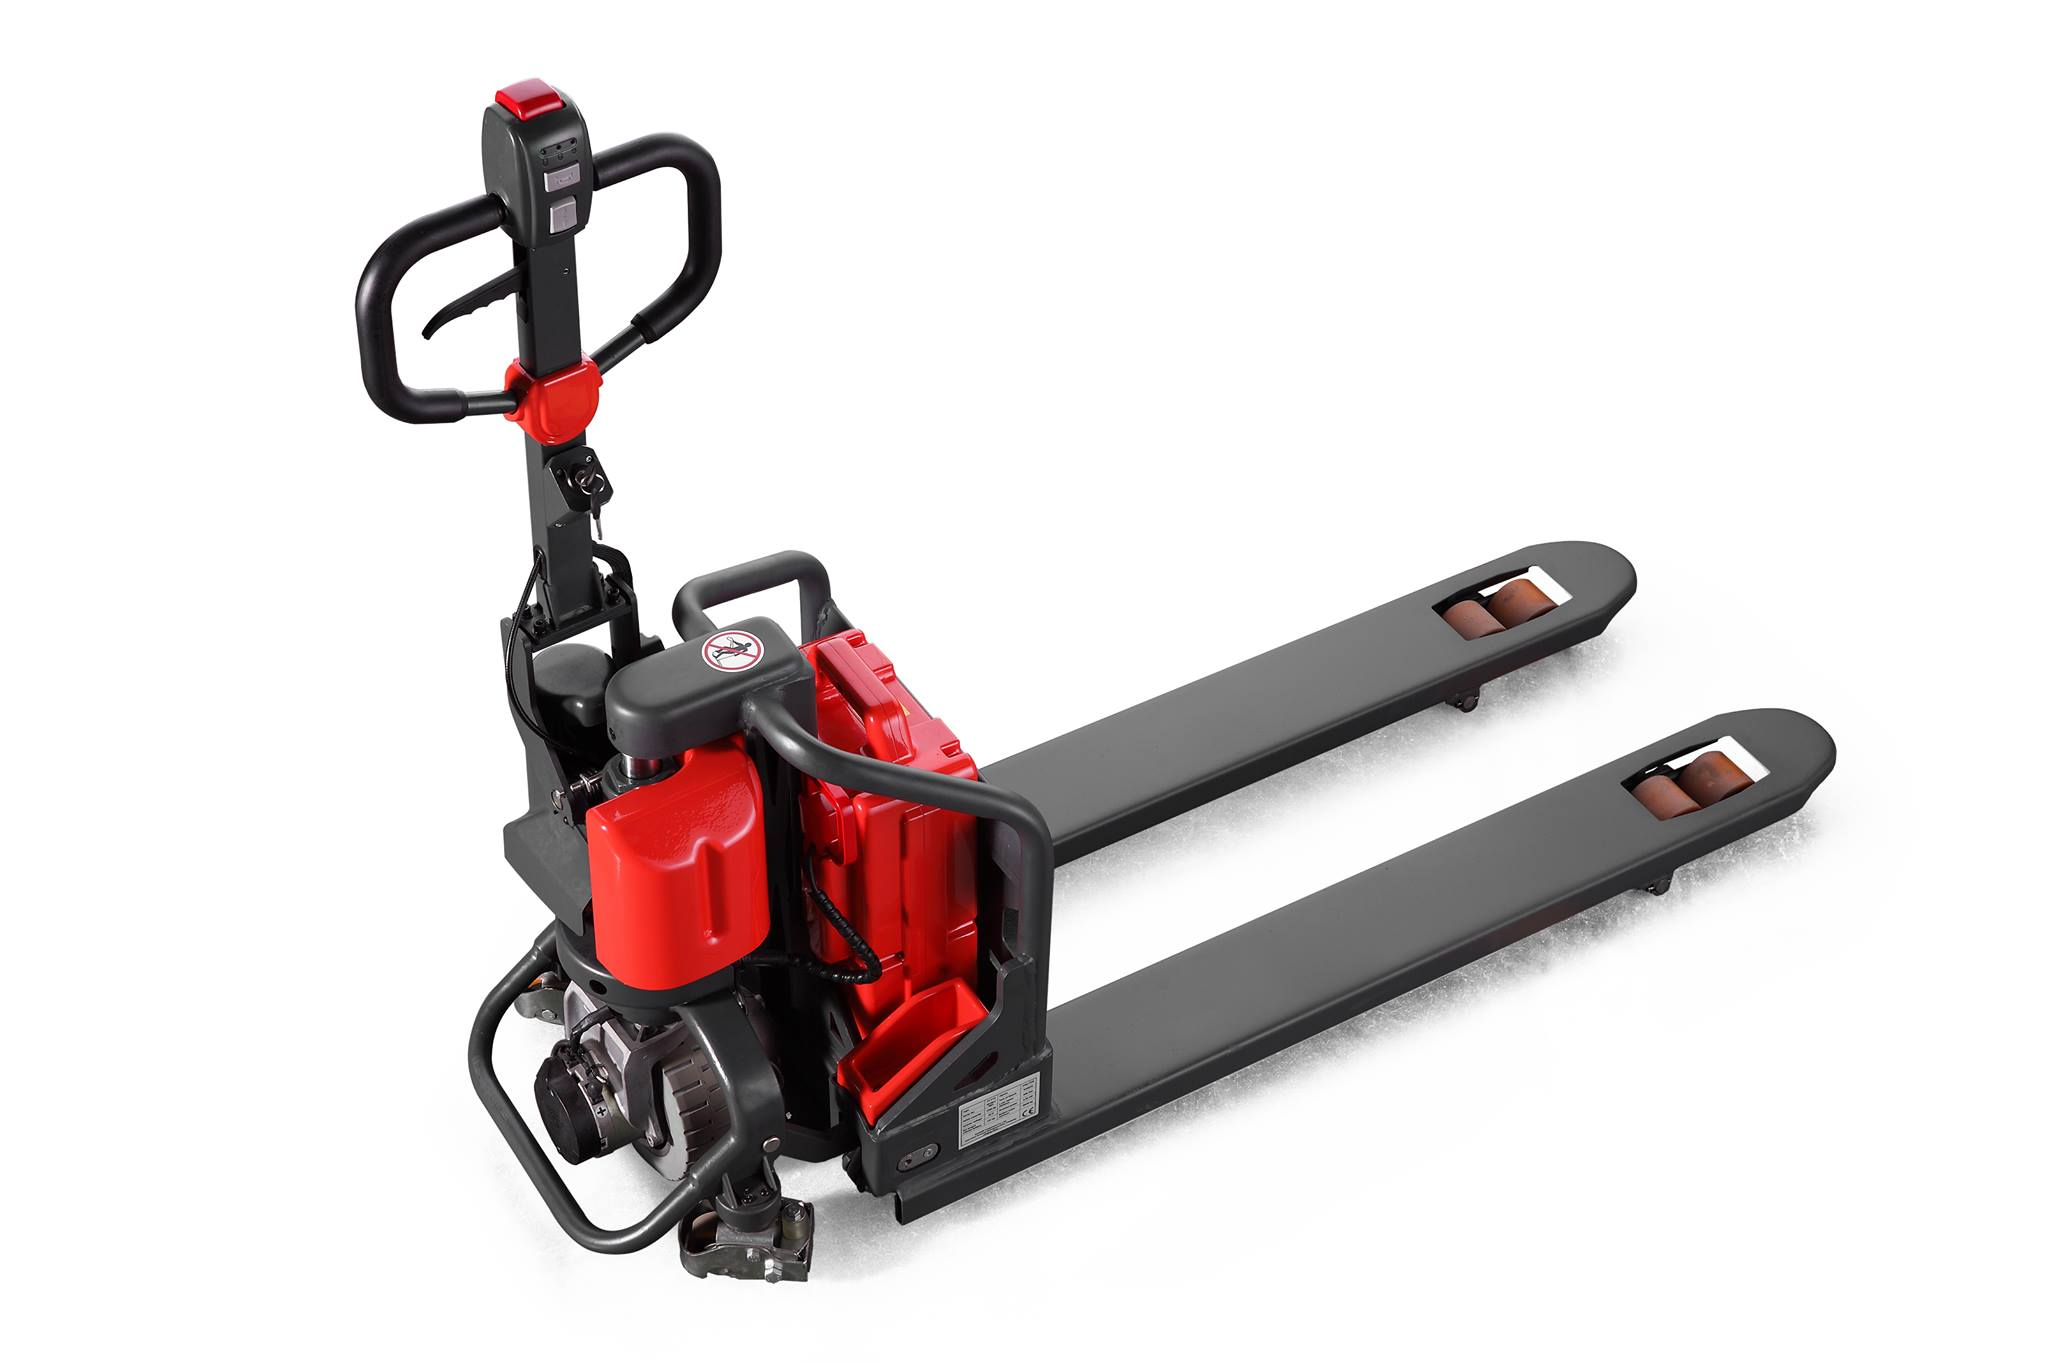 Electric Pallet Jack A Guide For Operational Safely